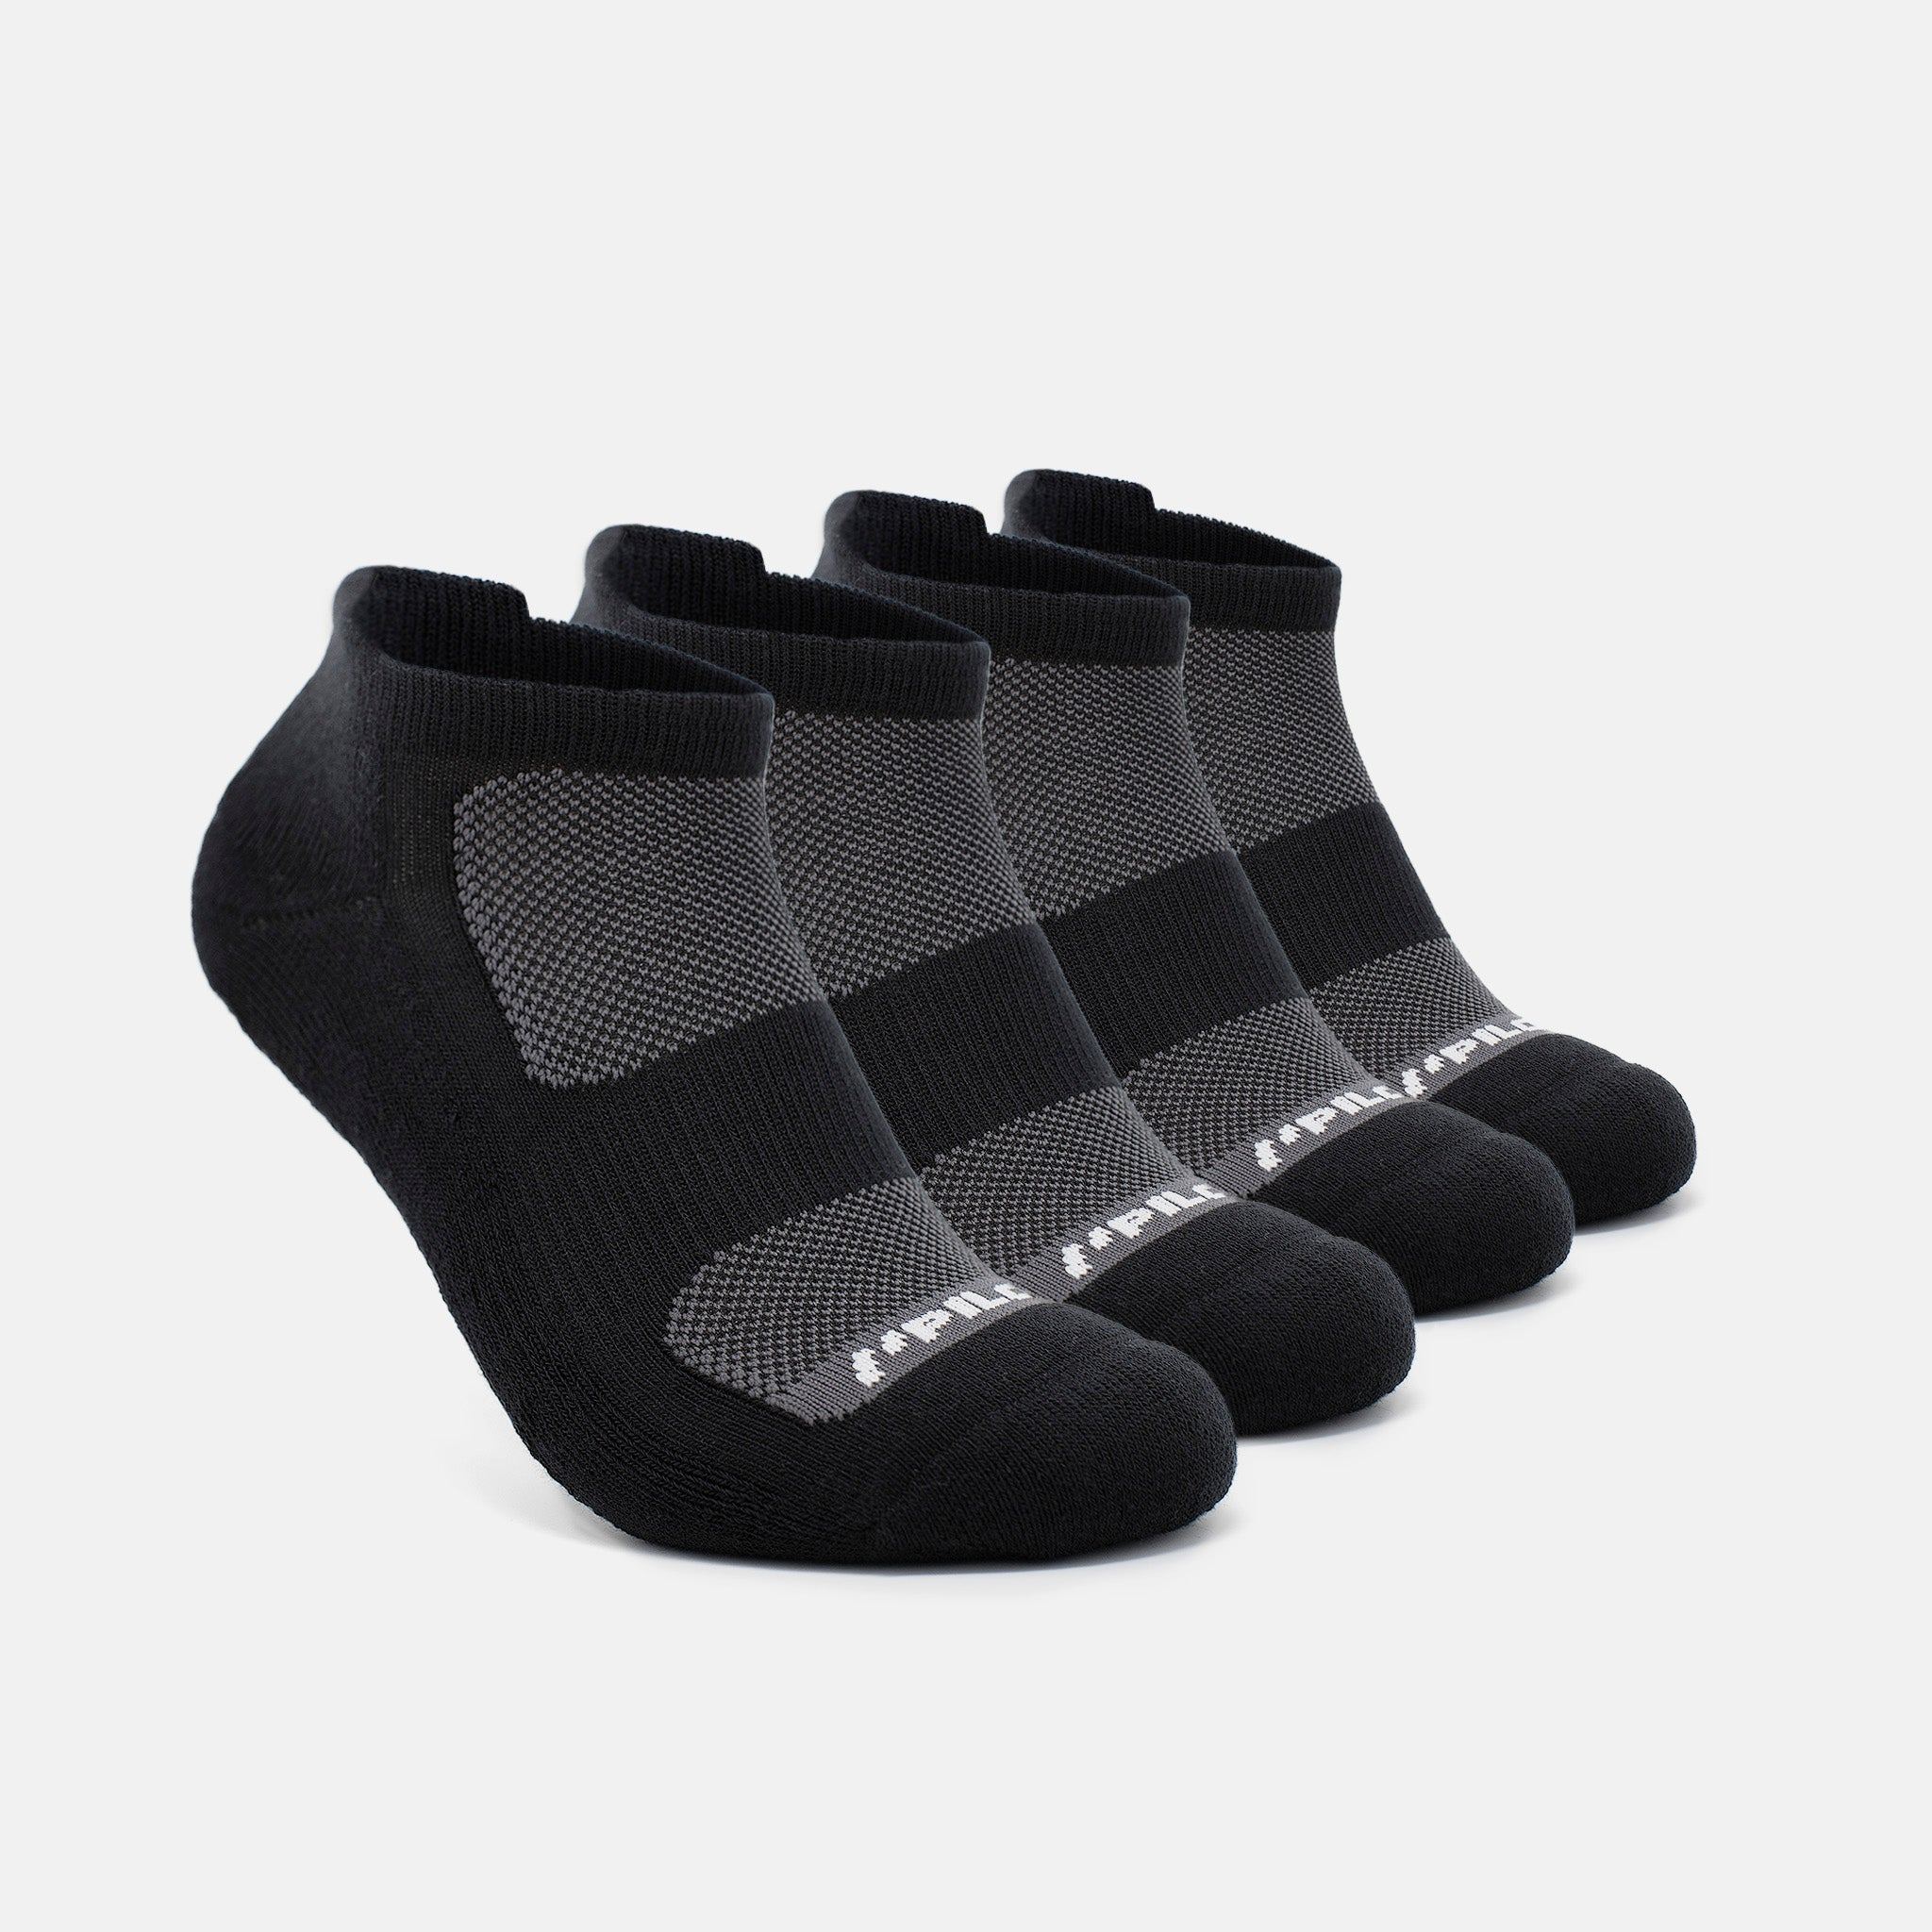 Women's Socks 4 Pack - Black